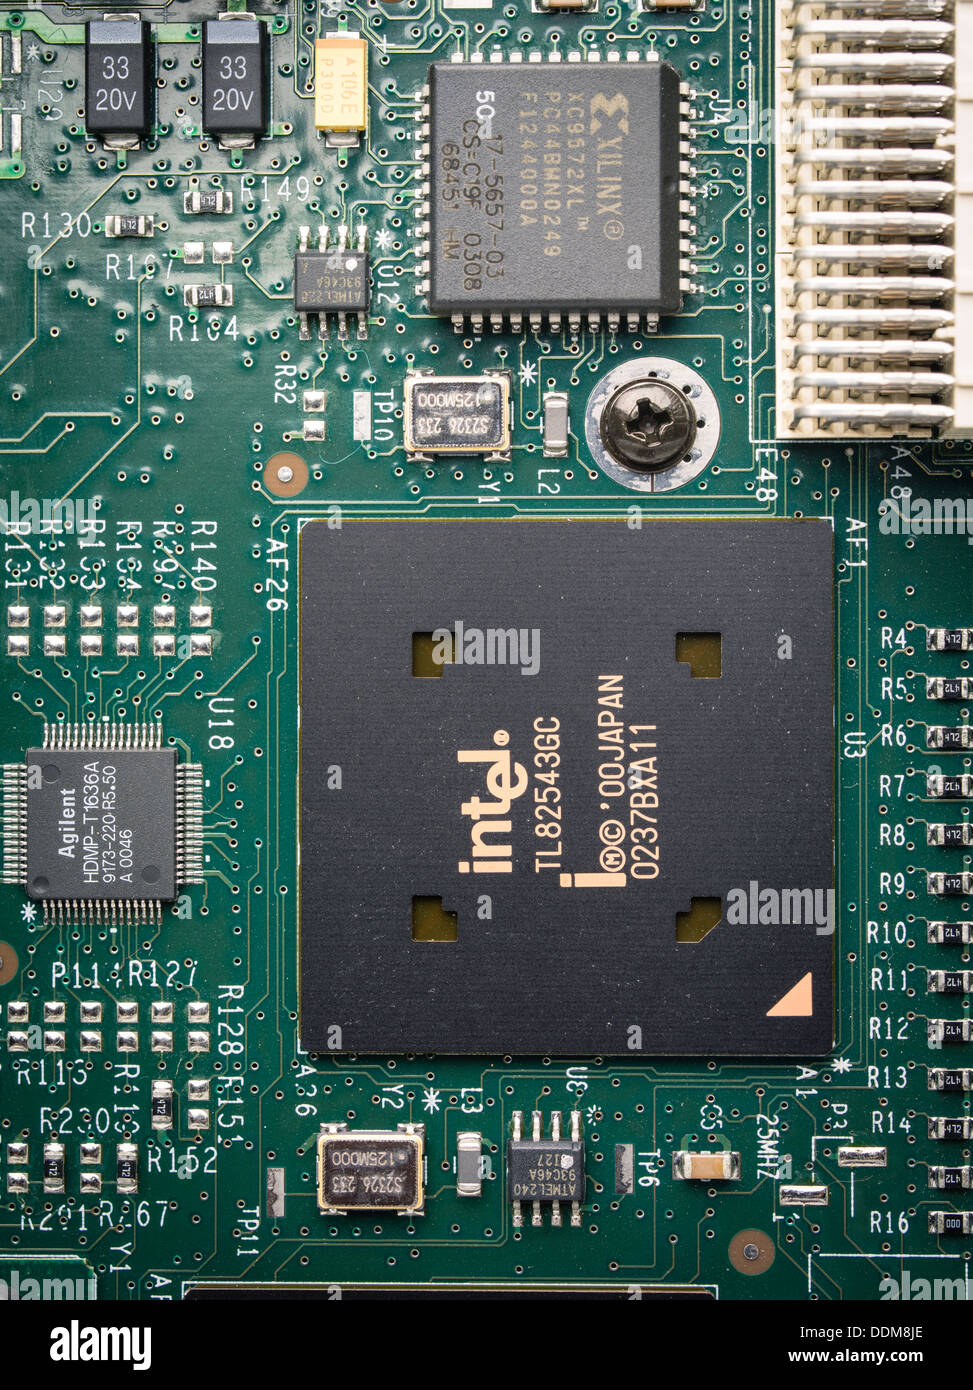 Made in Japan, Mikrochip Intel Flash Speicherplatine Stockbild